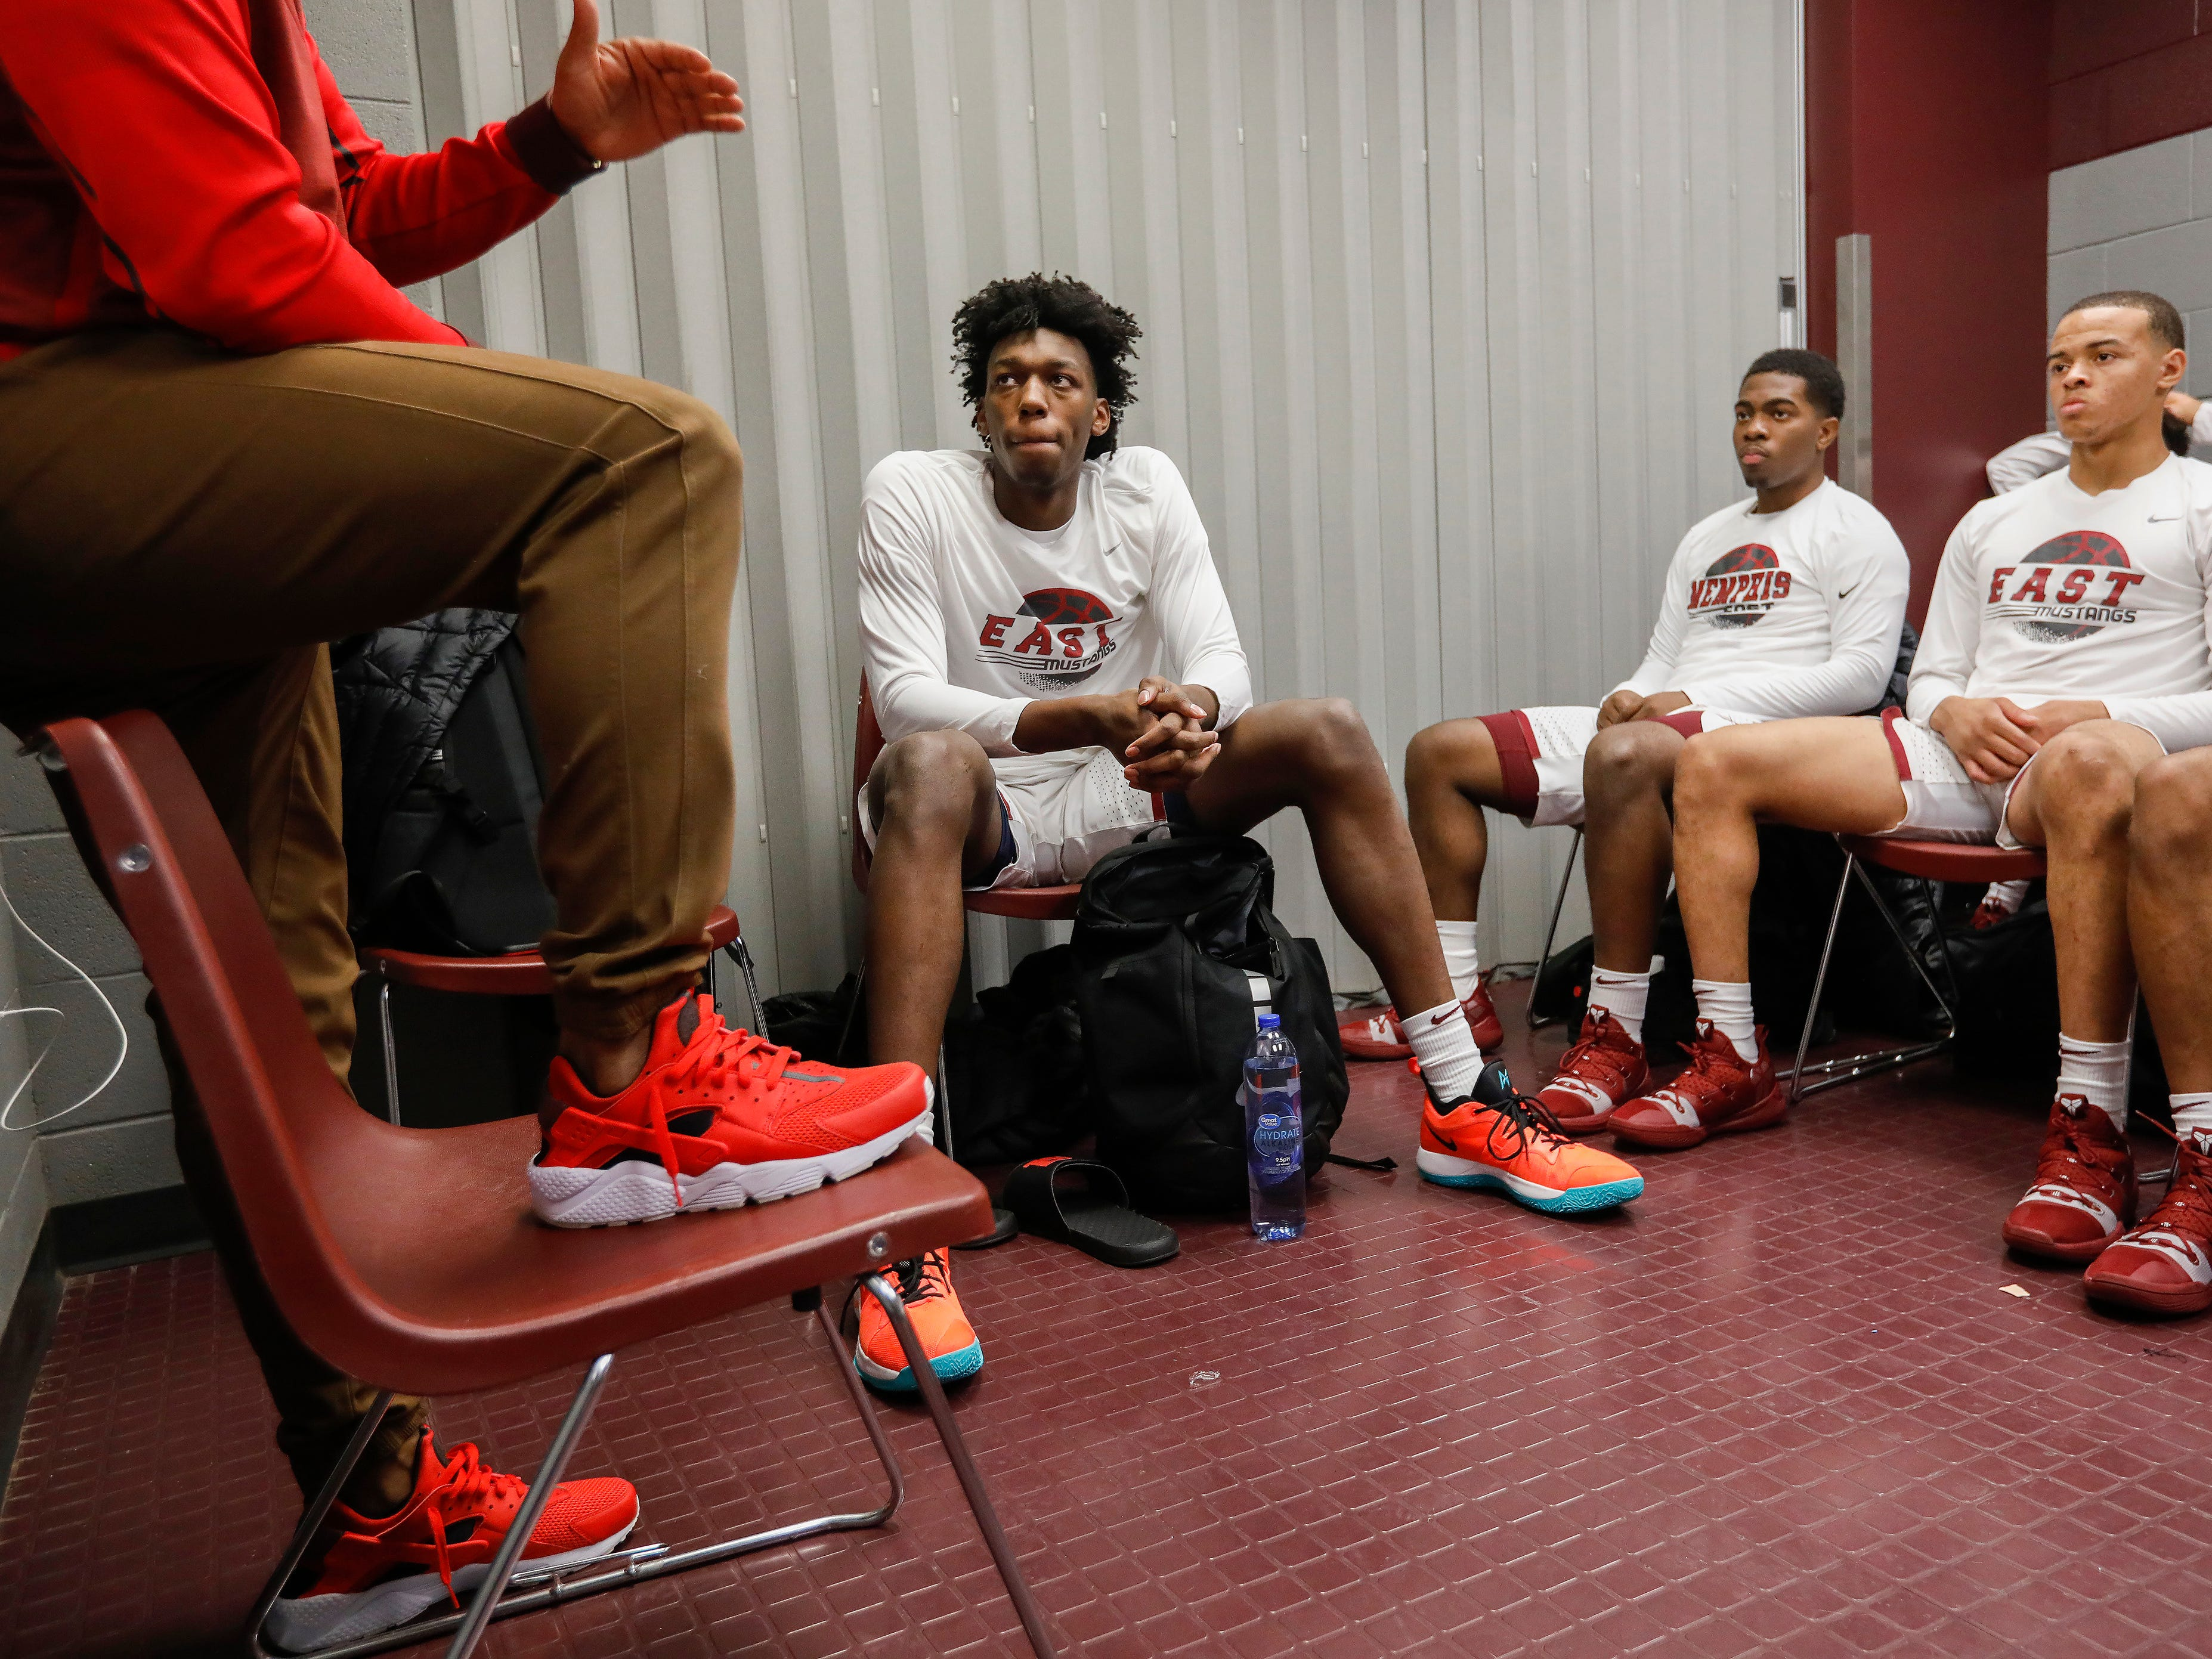 James Wiseman, center, of Memphis East High School, listens to his coach in the locker room at JQH Arena for the Bass Pro Shops Tournament of Champions on Thursday, Jan. 17, 2019.